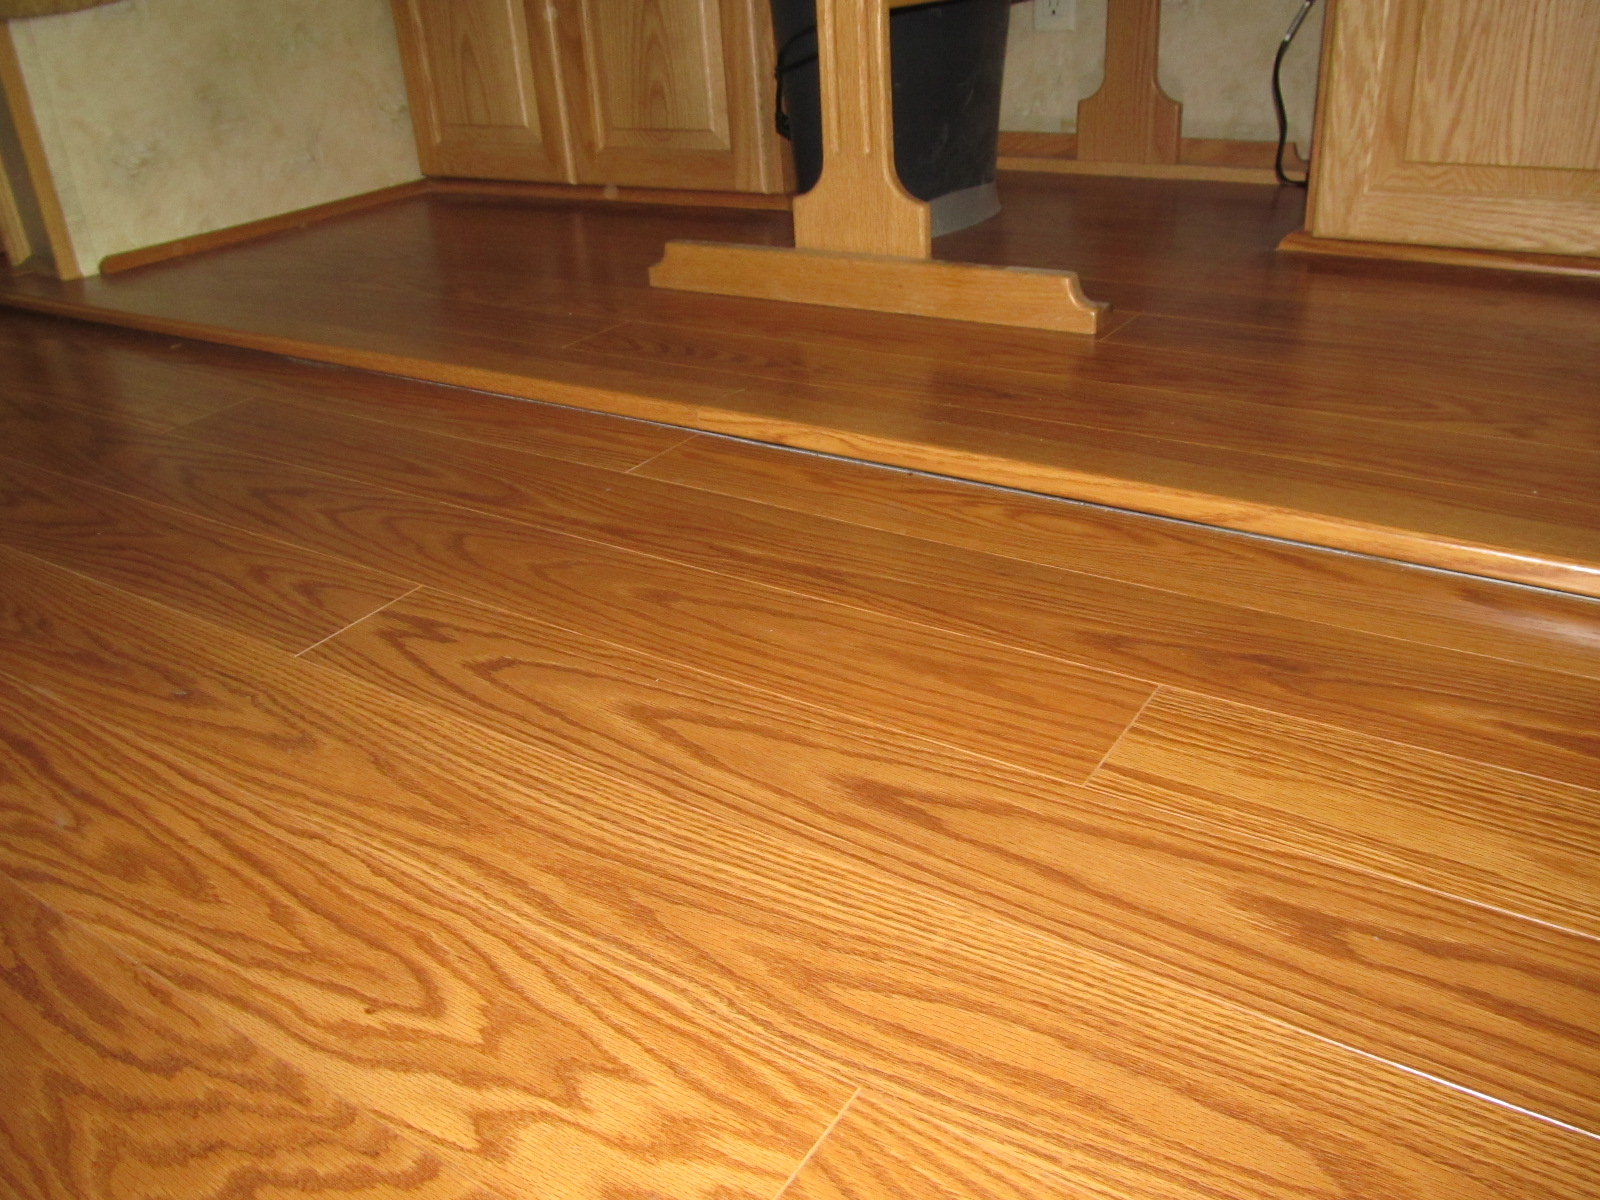 , styles, and brands of RV floor coverings . Laminate, Tile, Linoleum ...